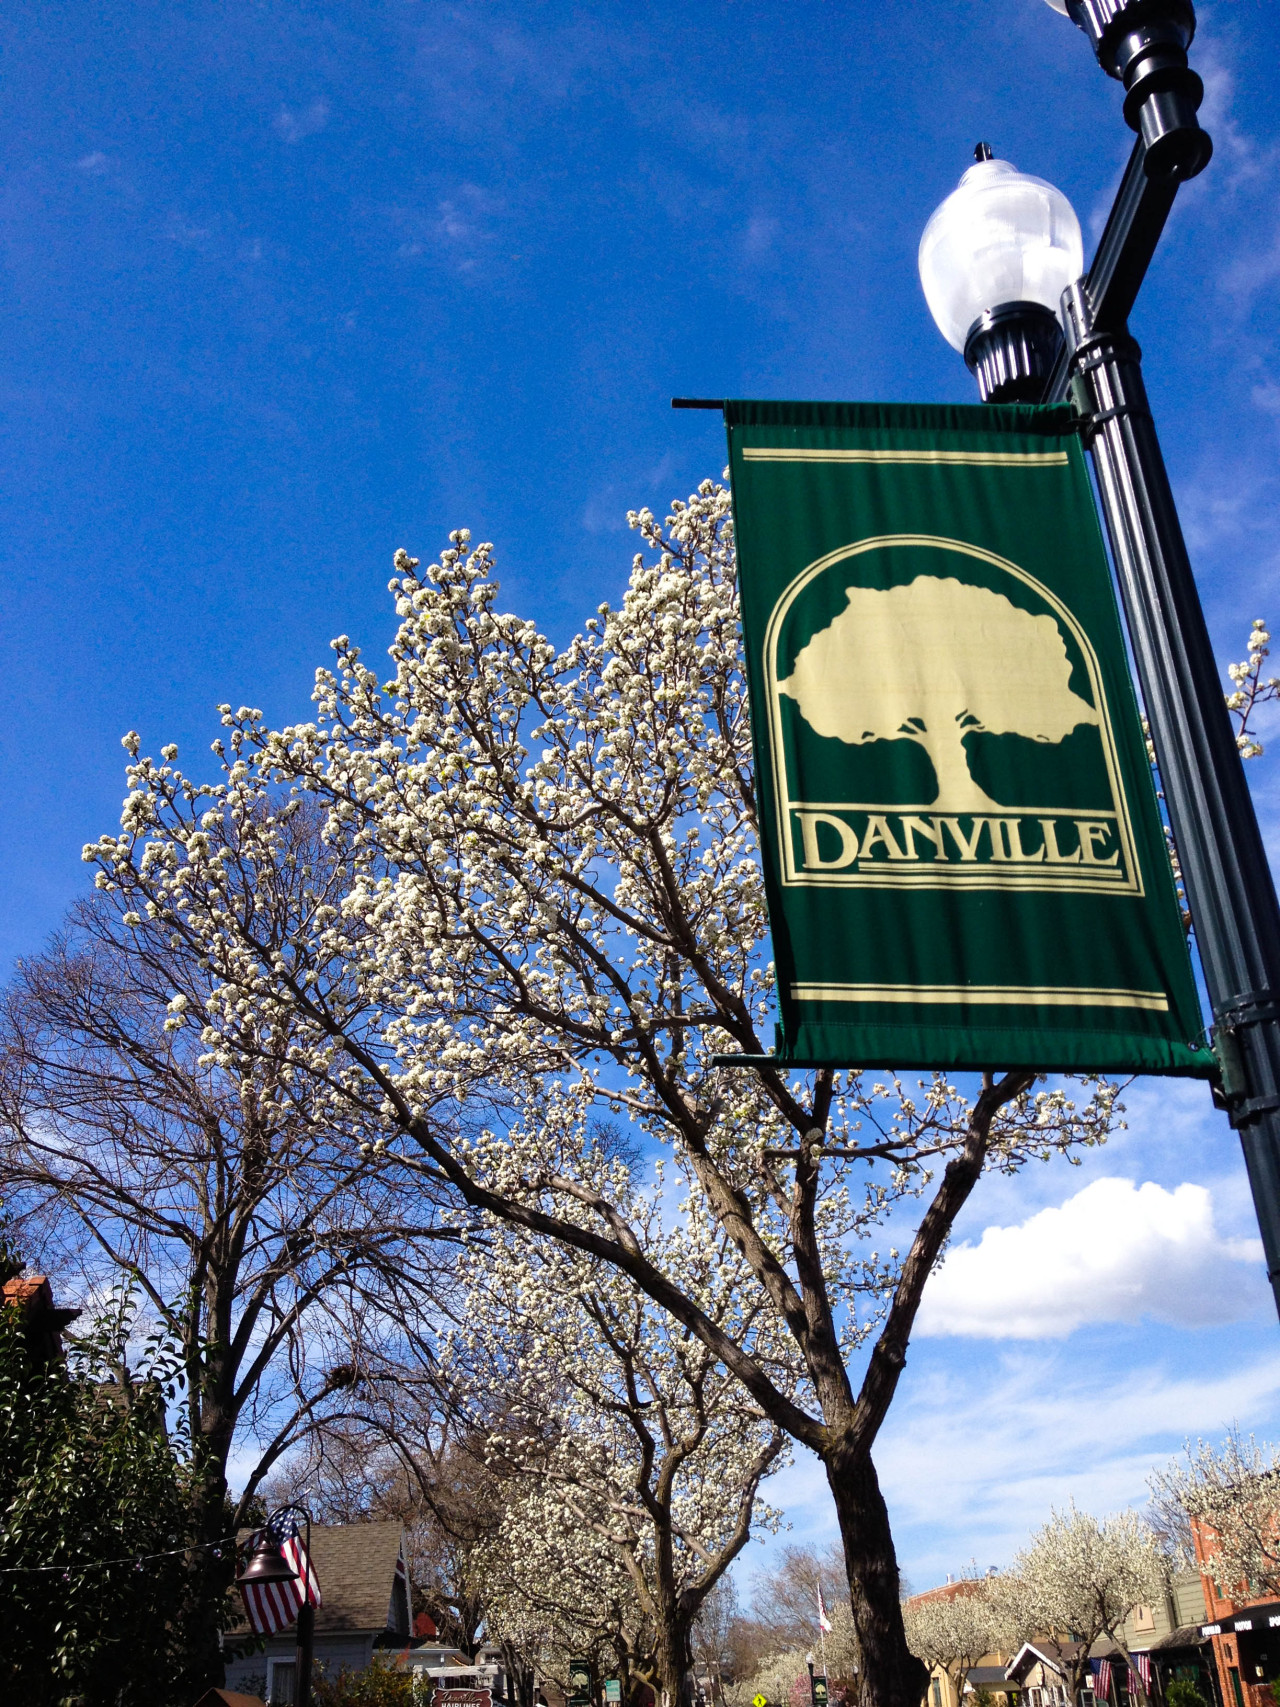 Downtown Danville [Taken 3/3/13 in Danville, CA using iPhone 4S]